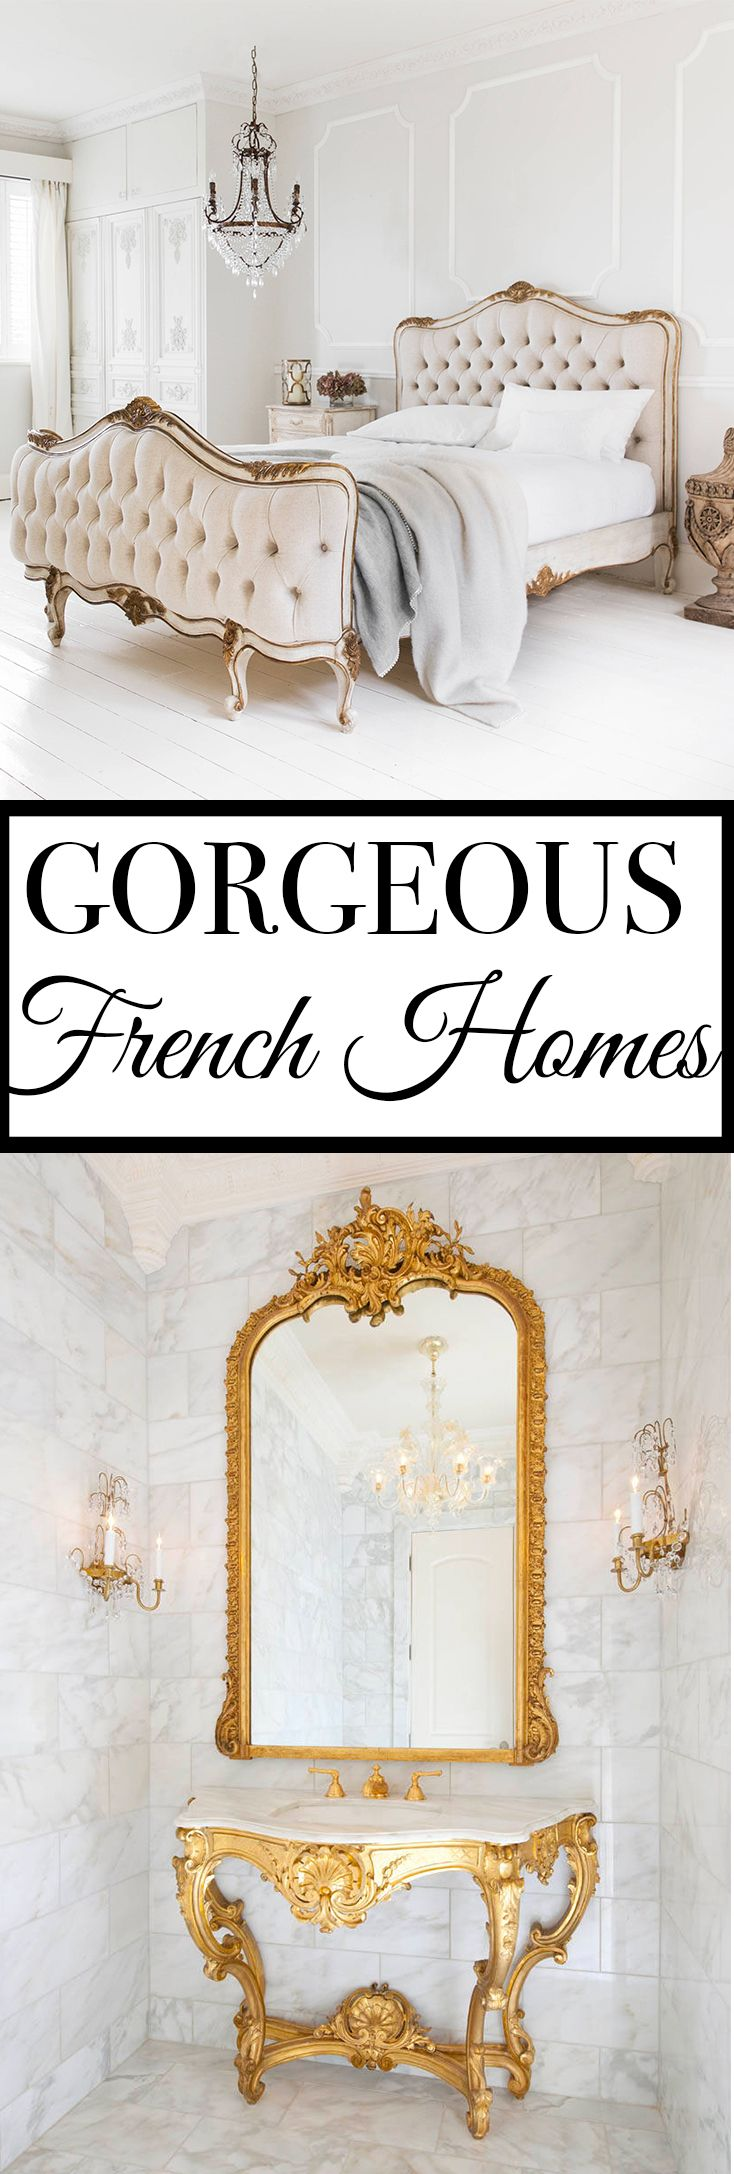 Versailles gold console table large image 4 by the french bedroom - 3 Secrets To French Decorating Versailles Inspired Rooms